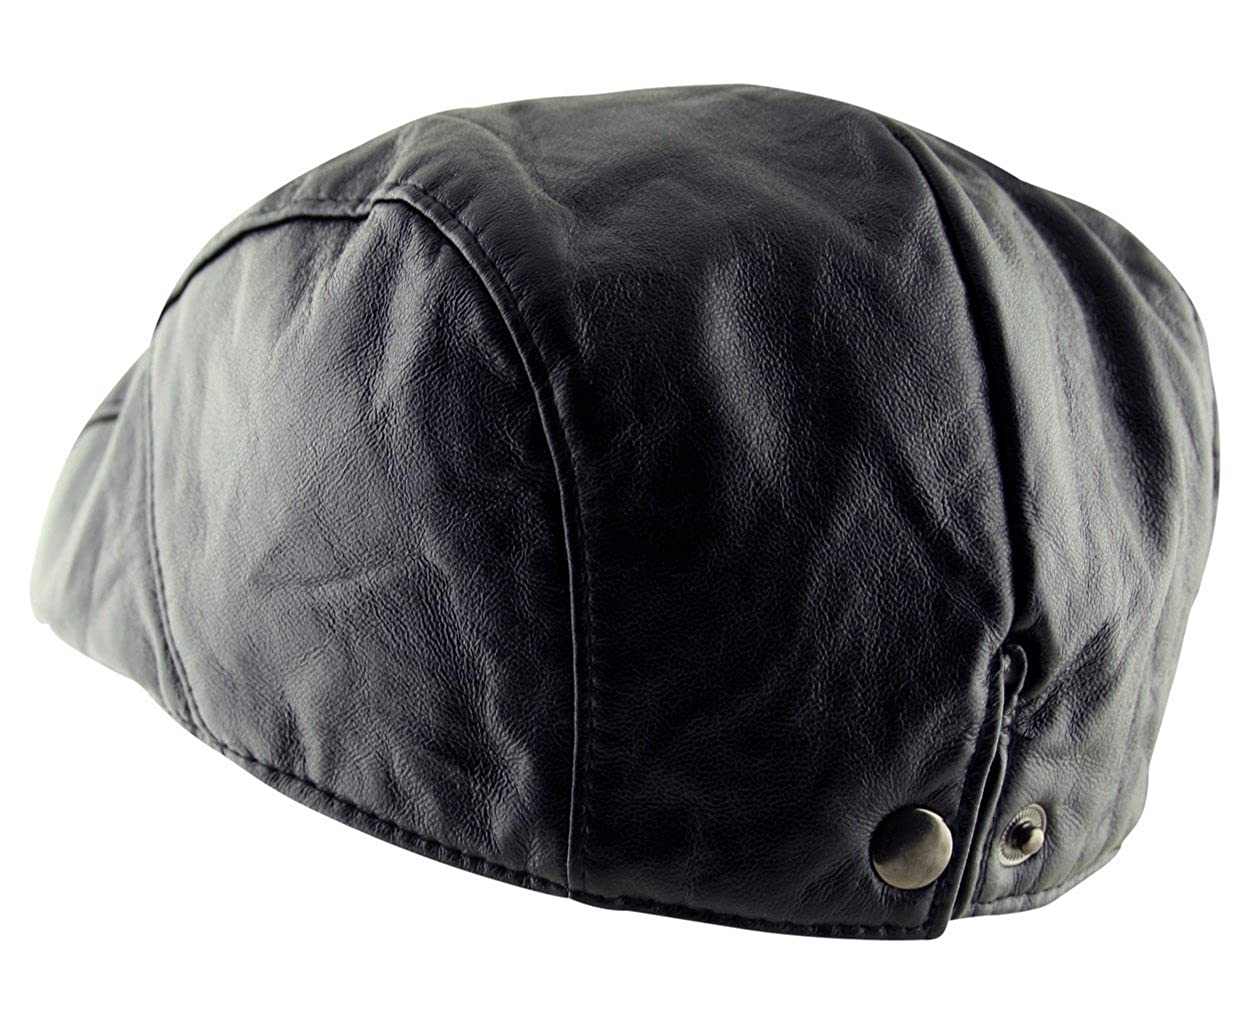 895e418b344f9 Itzu Men s Flat Cap Plain Faux Leather Hat Pre Curved Lined Vintage Gatsby  Golf Newsboy in Black  Amazon.co.uk  Clothing